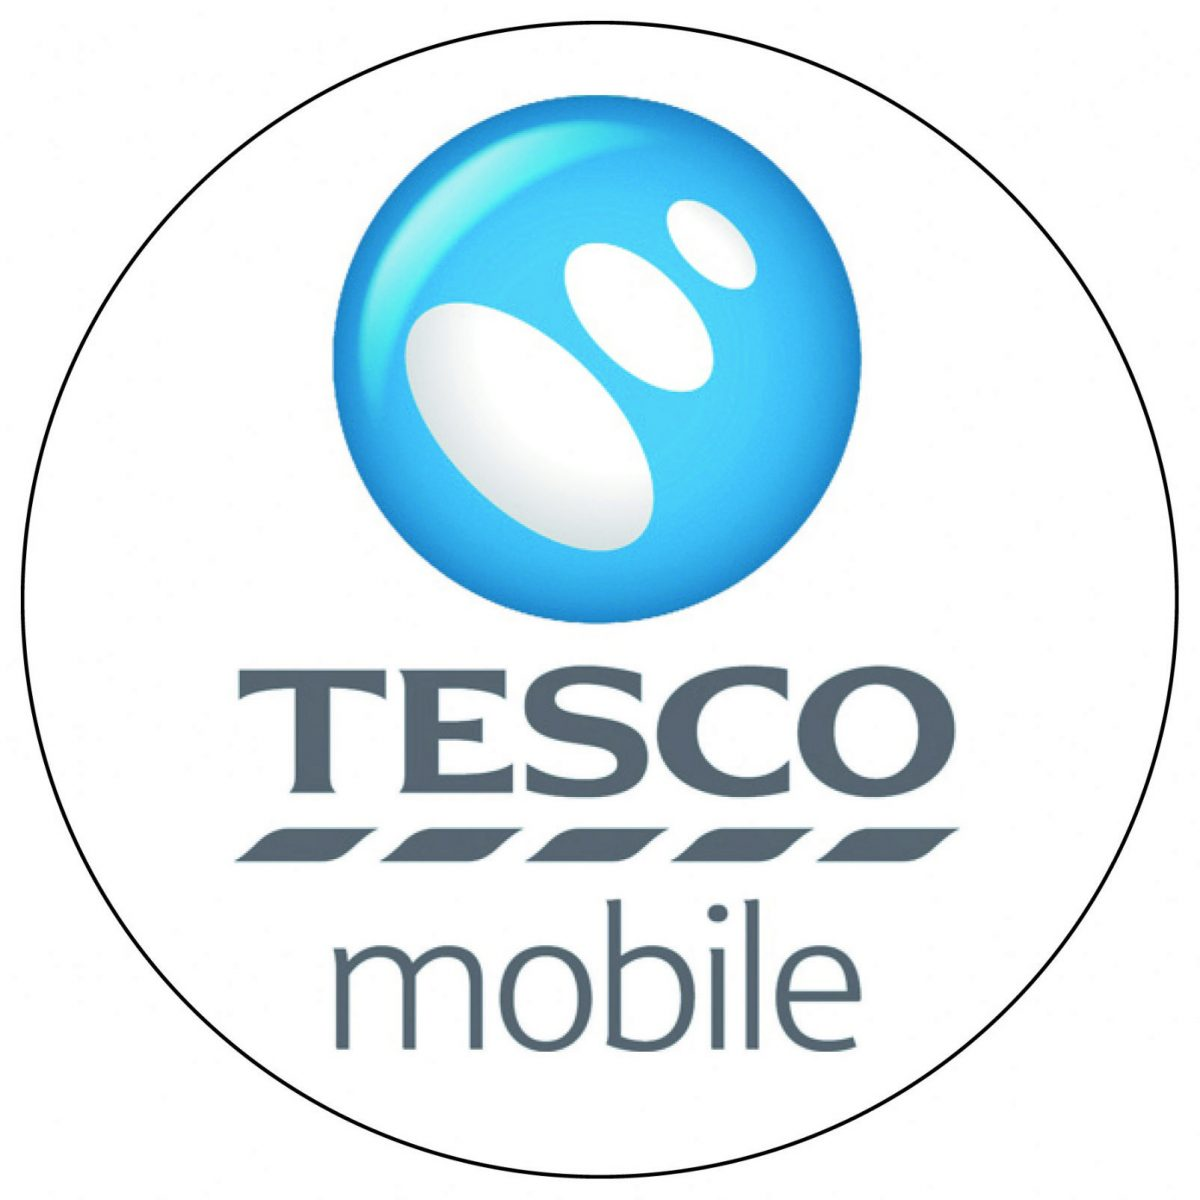 Tesco Mobile Phone Numbers